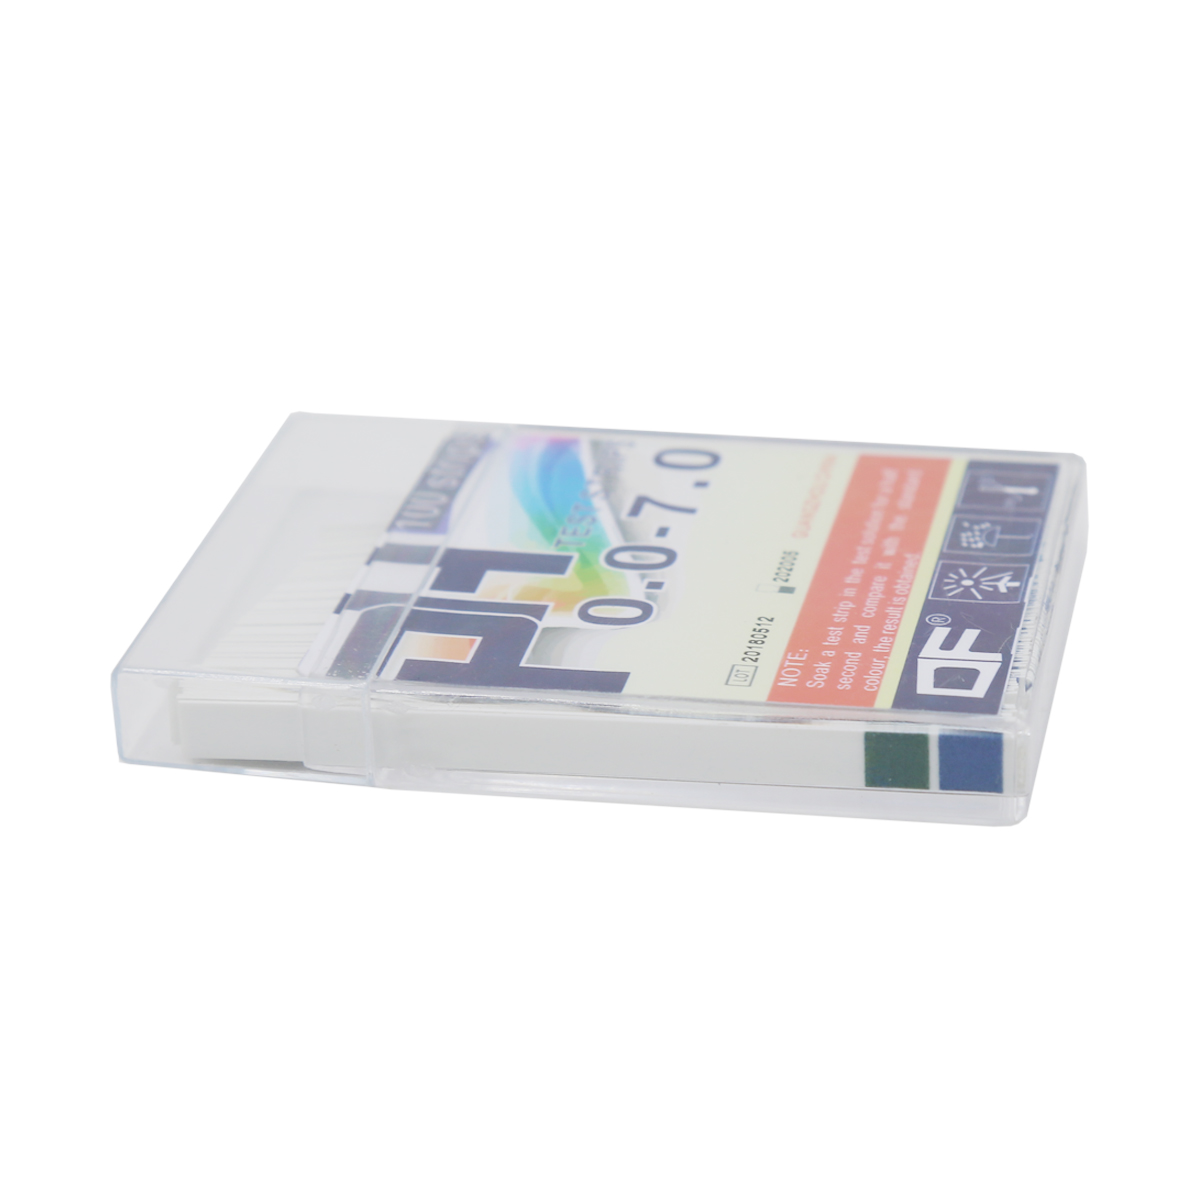 PH Test Strips for Testing Alkaline Acid Levels Monitor Saliva and Litmus Paper Urine 0-7 Measurement range